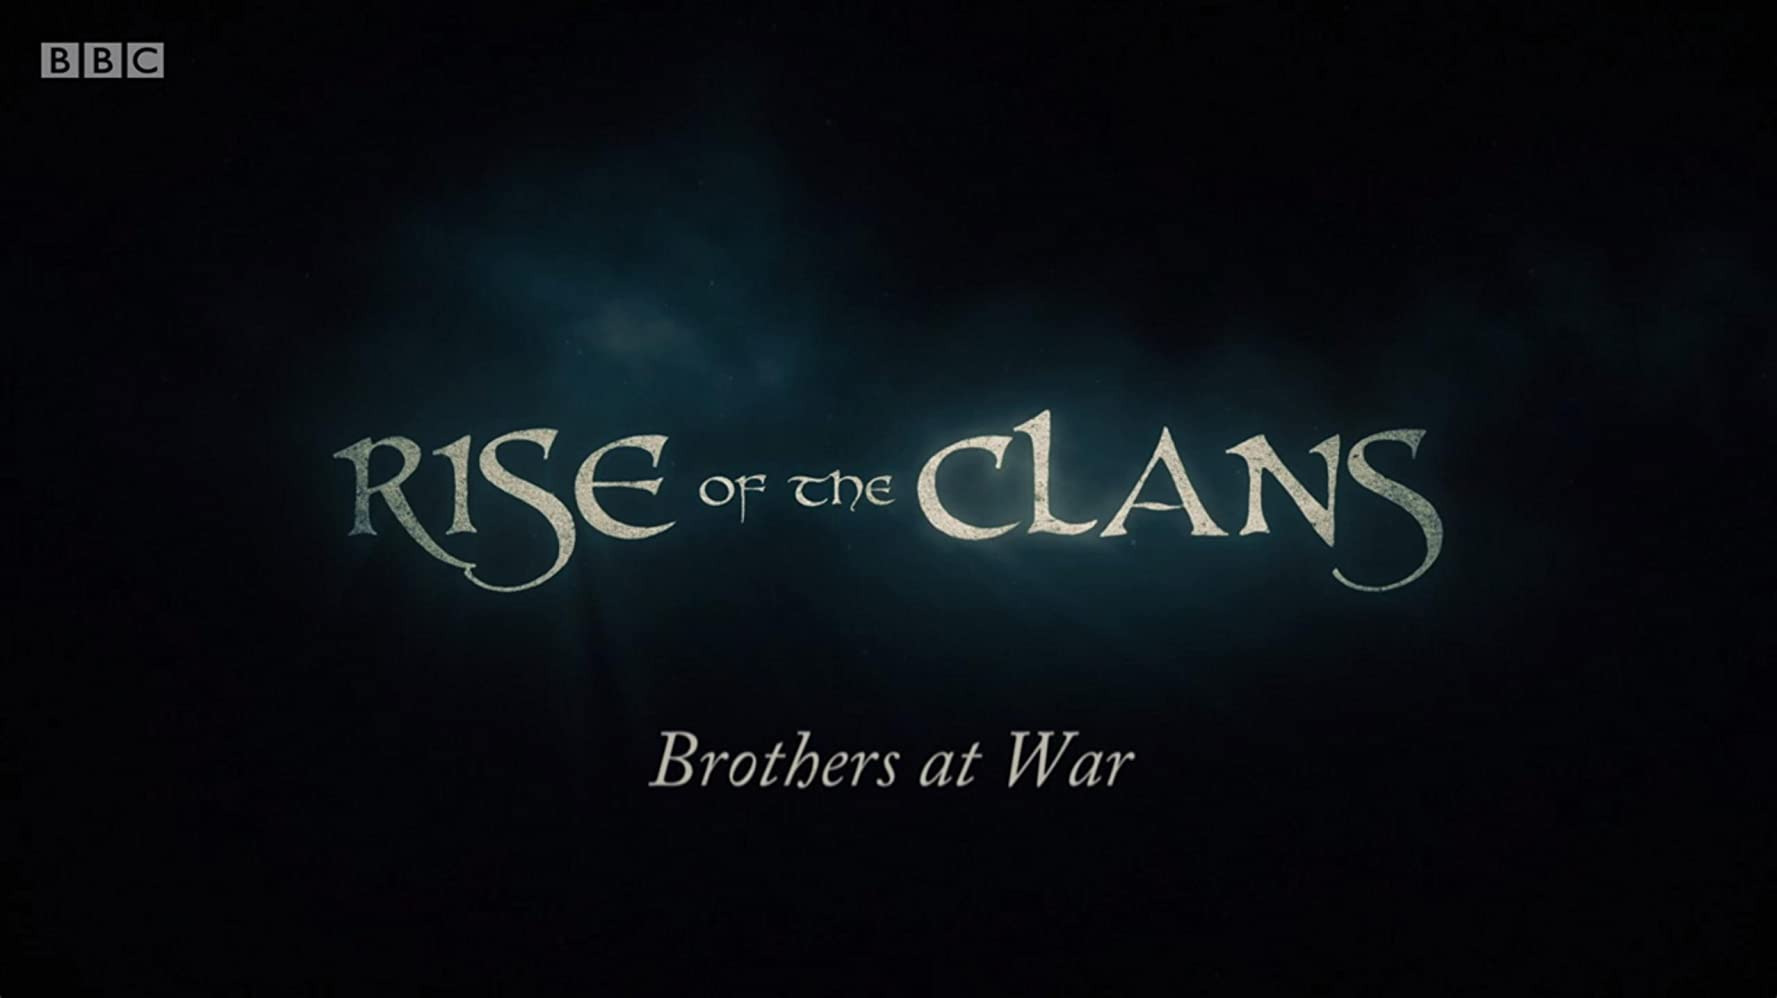 Show Rise of the Clans